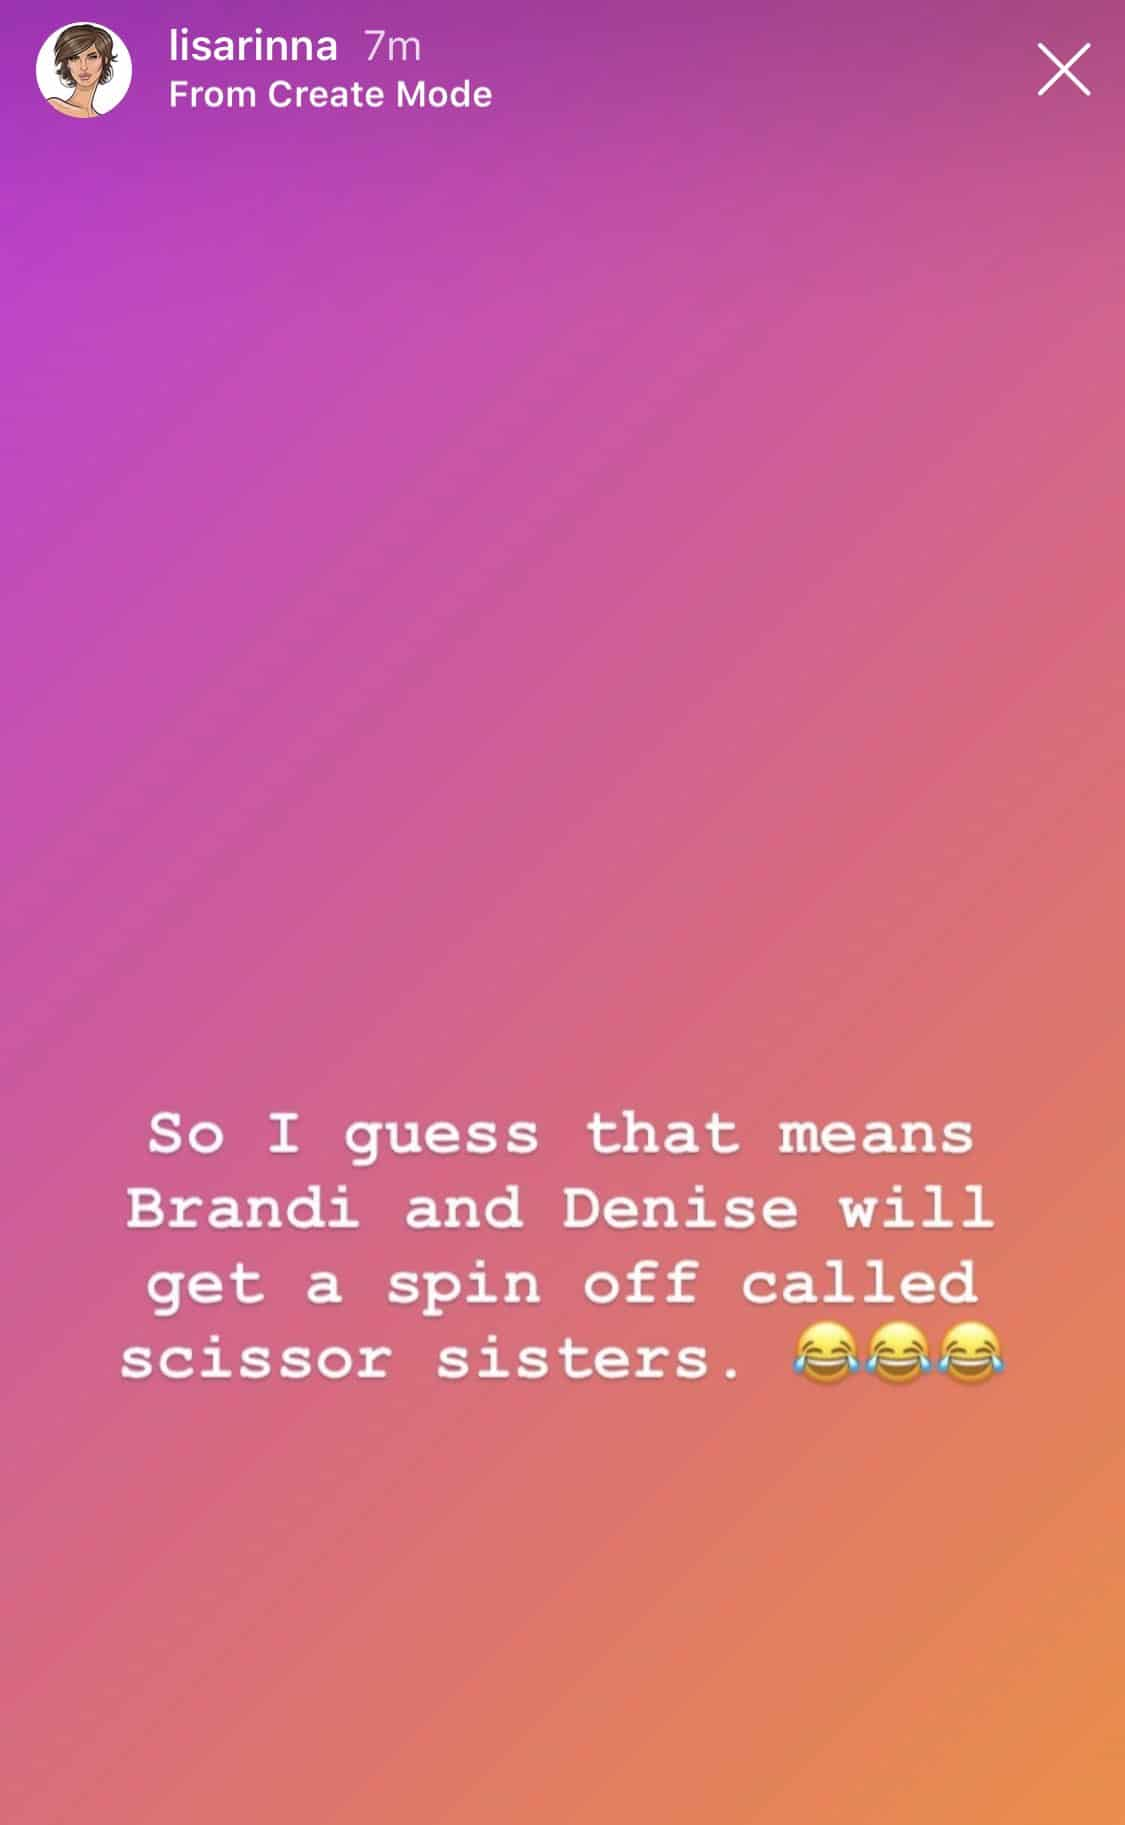 RHOBH Lisa Rinna Jokes About 'Scissor Sisters' RHOBH Spinoff With Denise Richards and Brandi Glanville